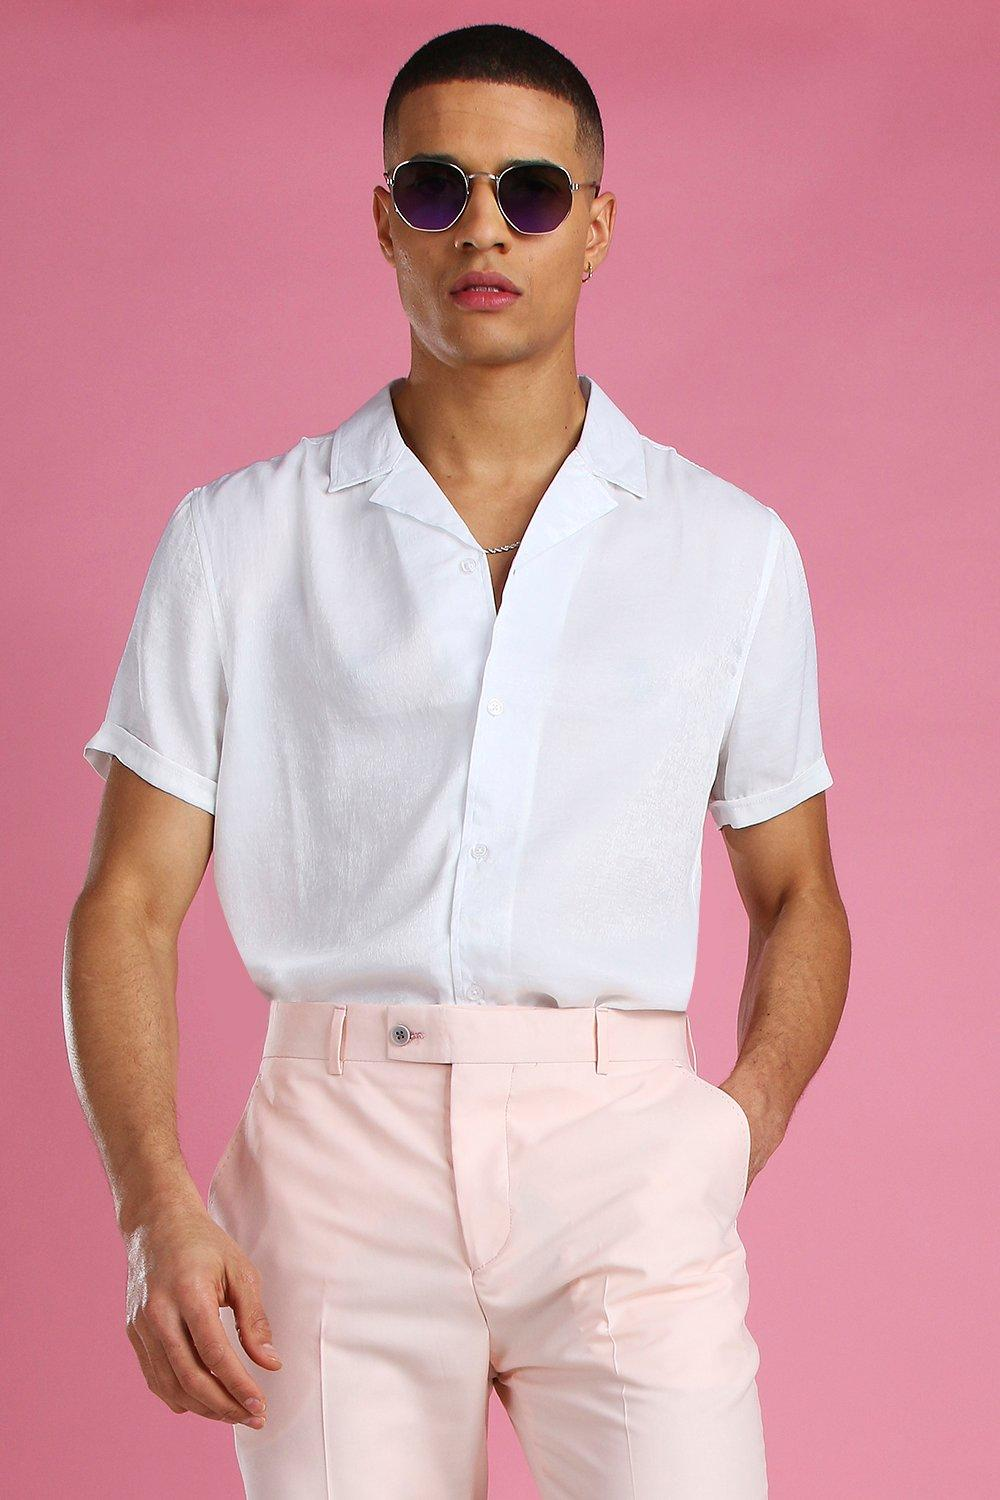 Mens Vintage Shirts – Casual, Dress, T-shirts, Polos Mens Short Sleeve Revere Collar Satin Party Shirt - White $16.00 AT vintagedancer.com